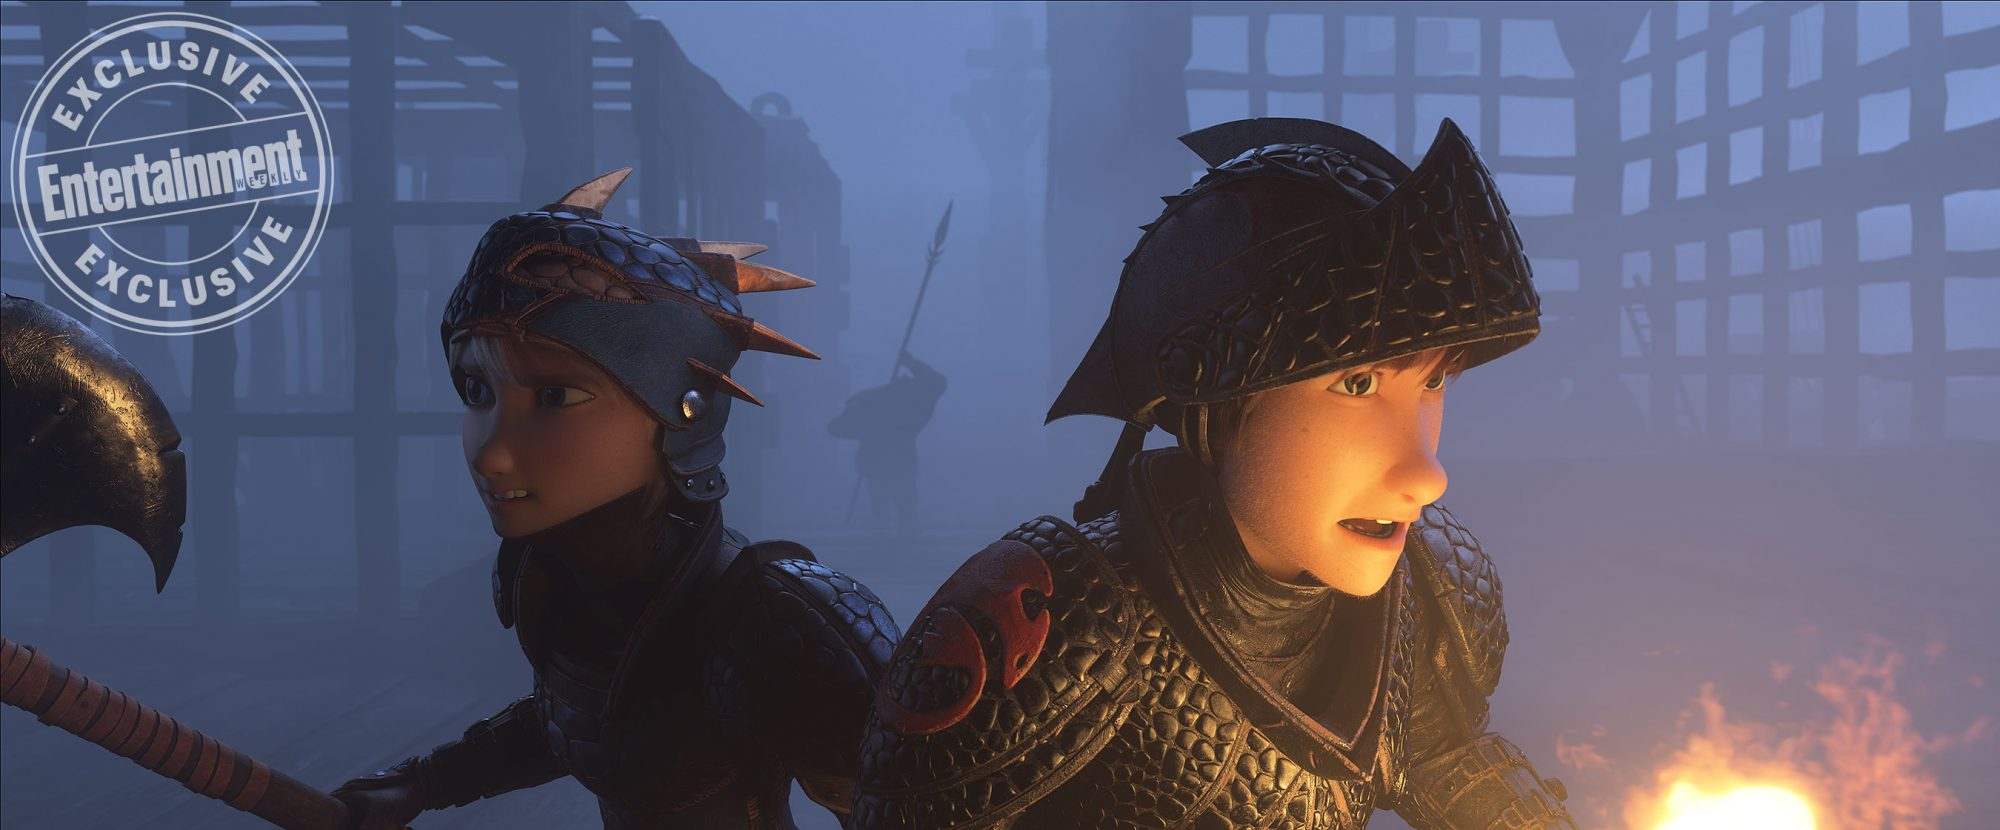 How to Train Your Dragon 3Credit: Dreamworks Animation